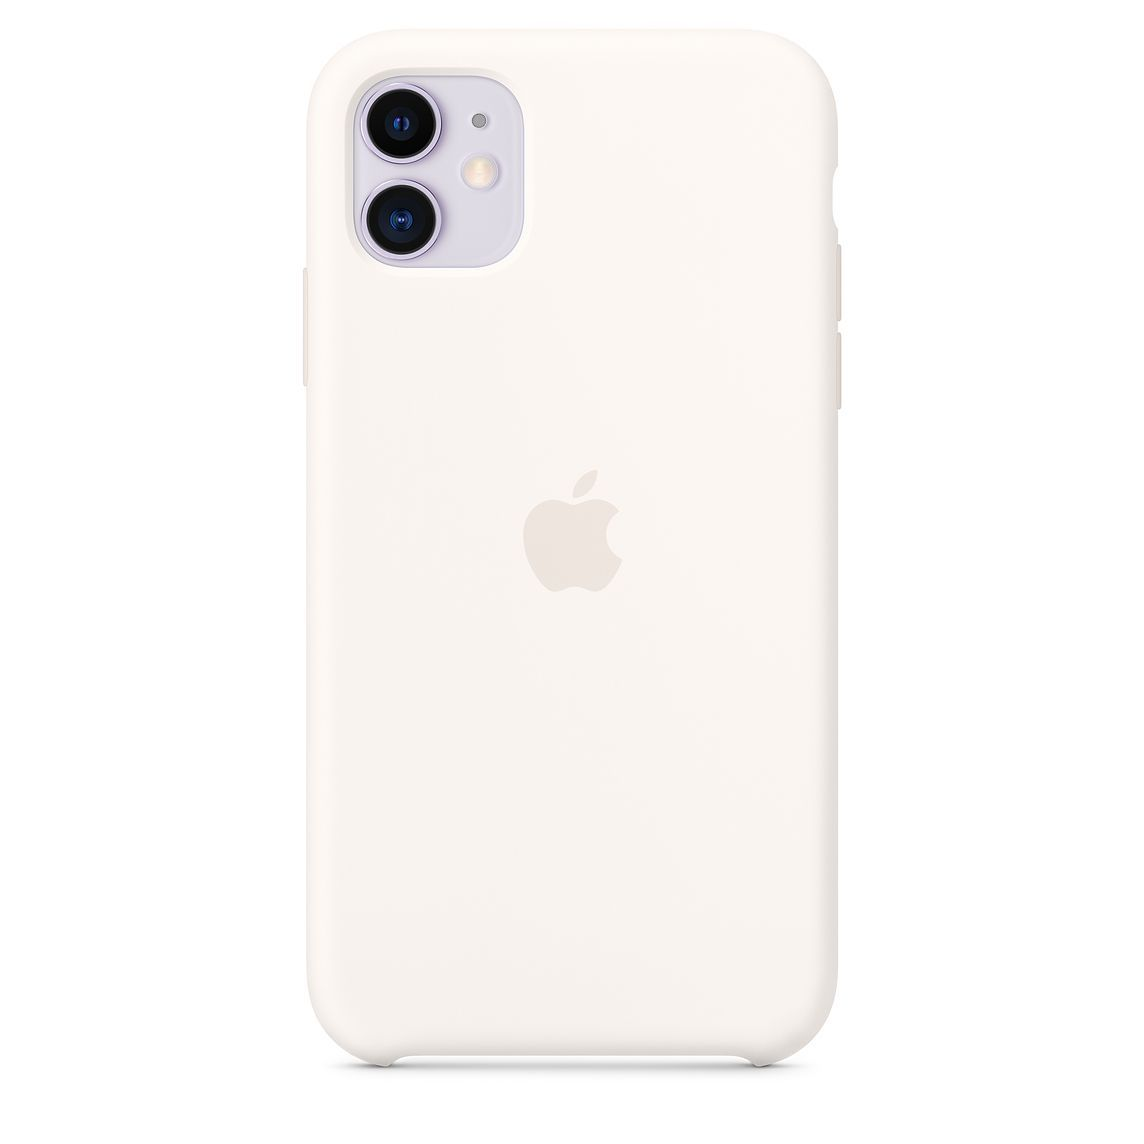 Iphone 11 Silicone Case Soft White With Images